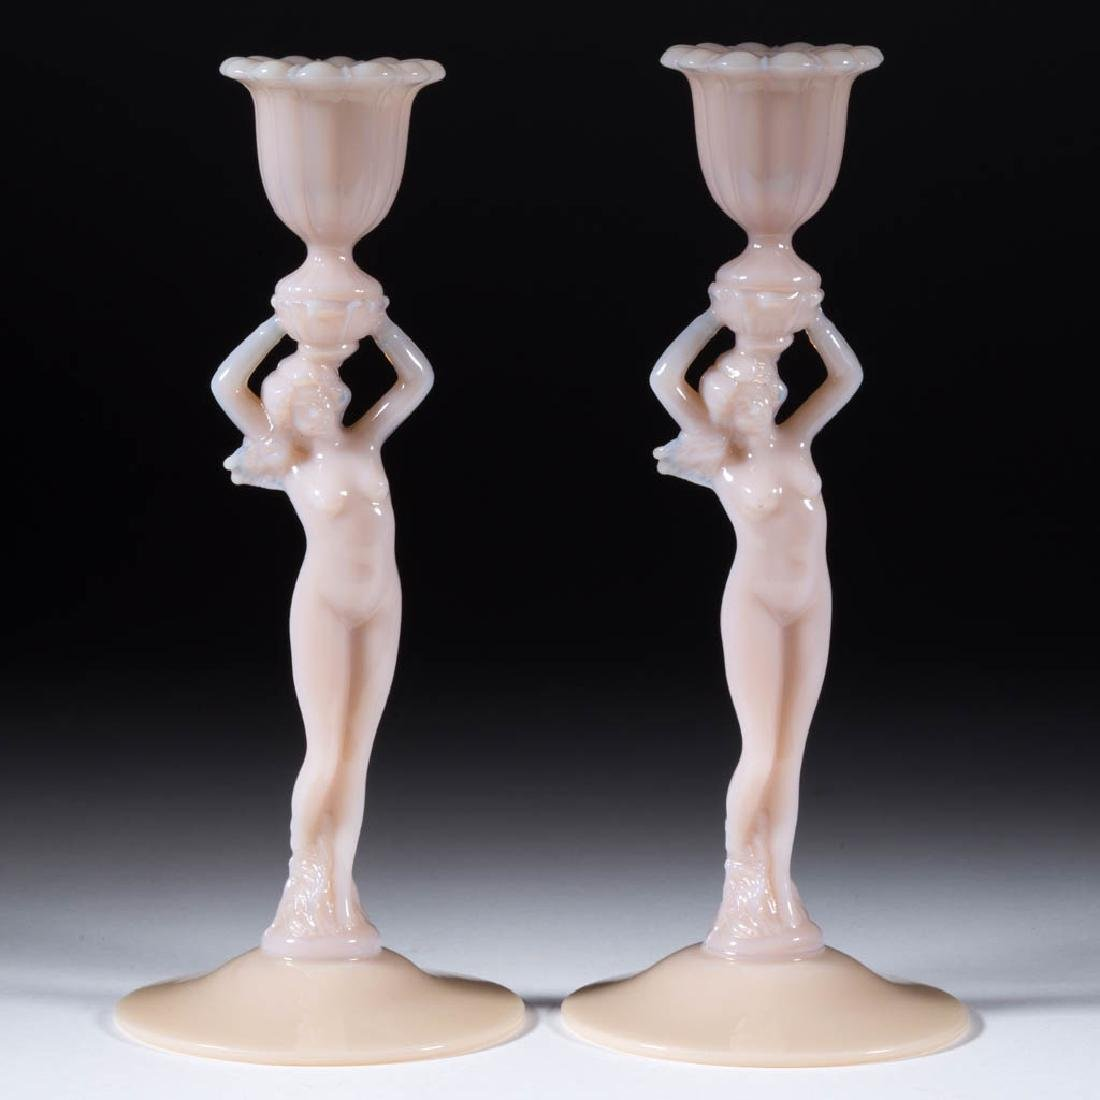 CAMBRIDGE NO. 3011 STATUESQUE NUDE-STEM PAIR OF